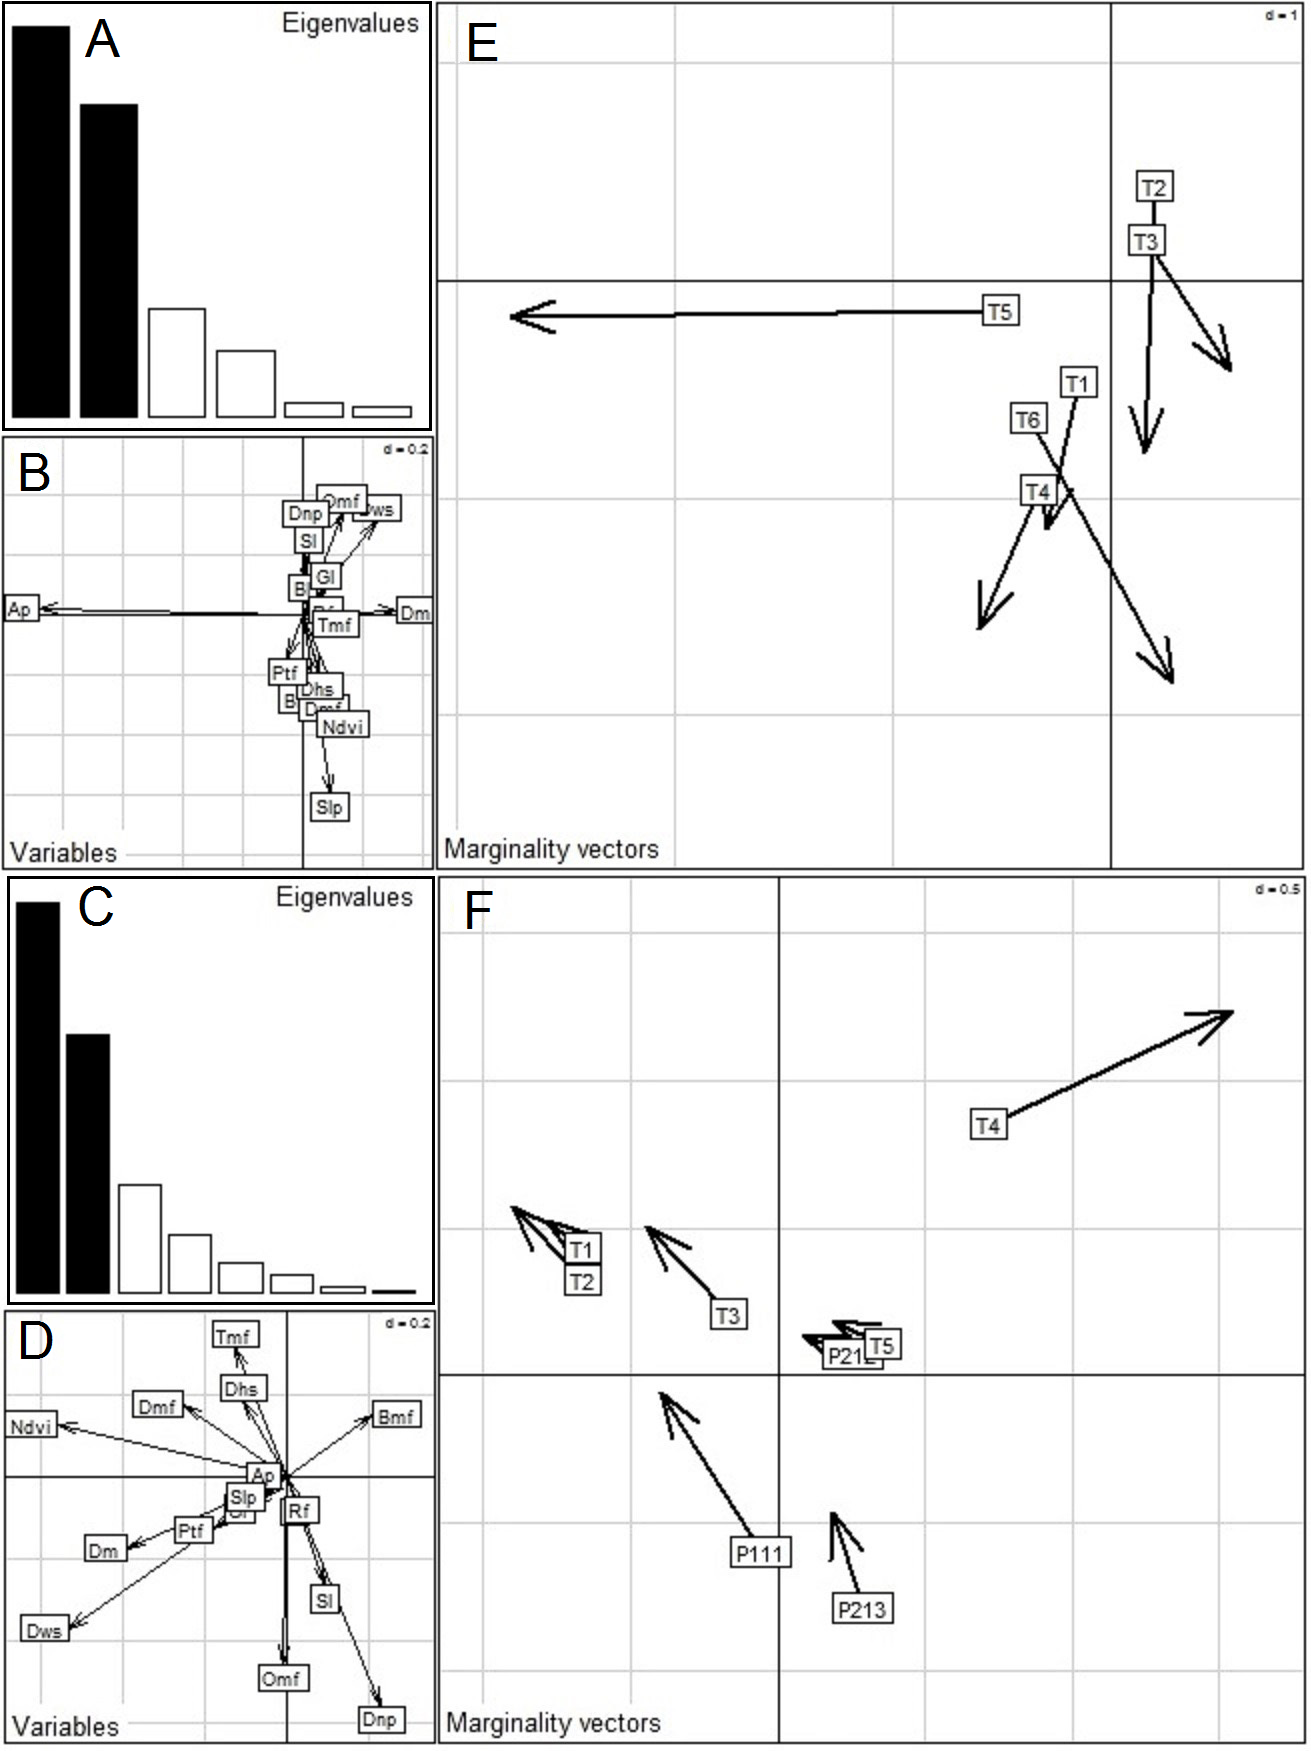 Assessment of fine-scale resource selection and spatially